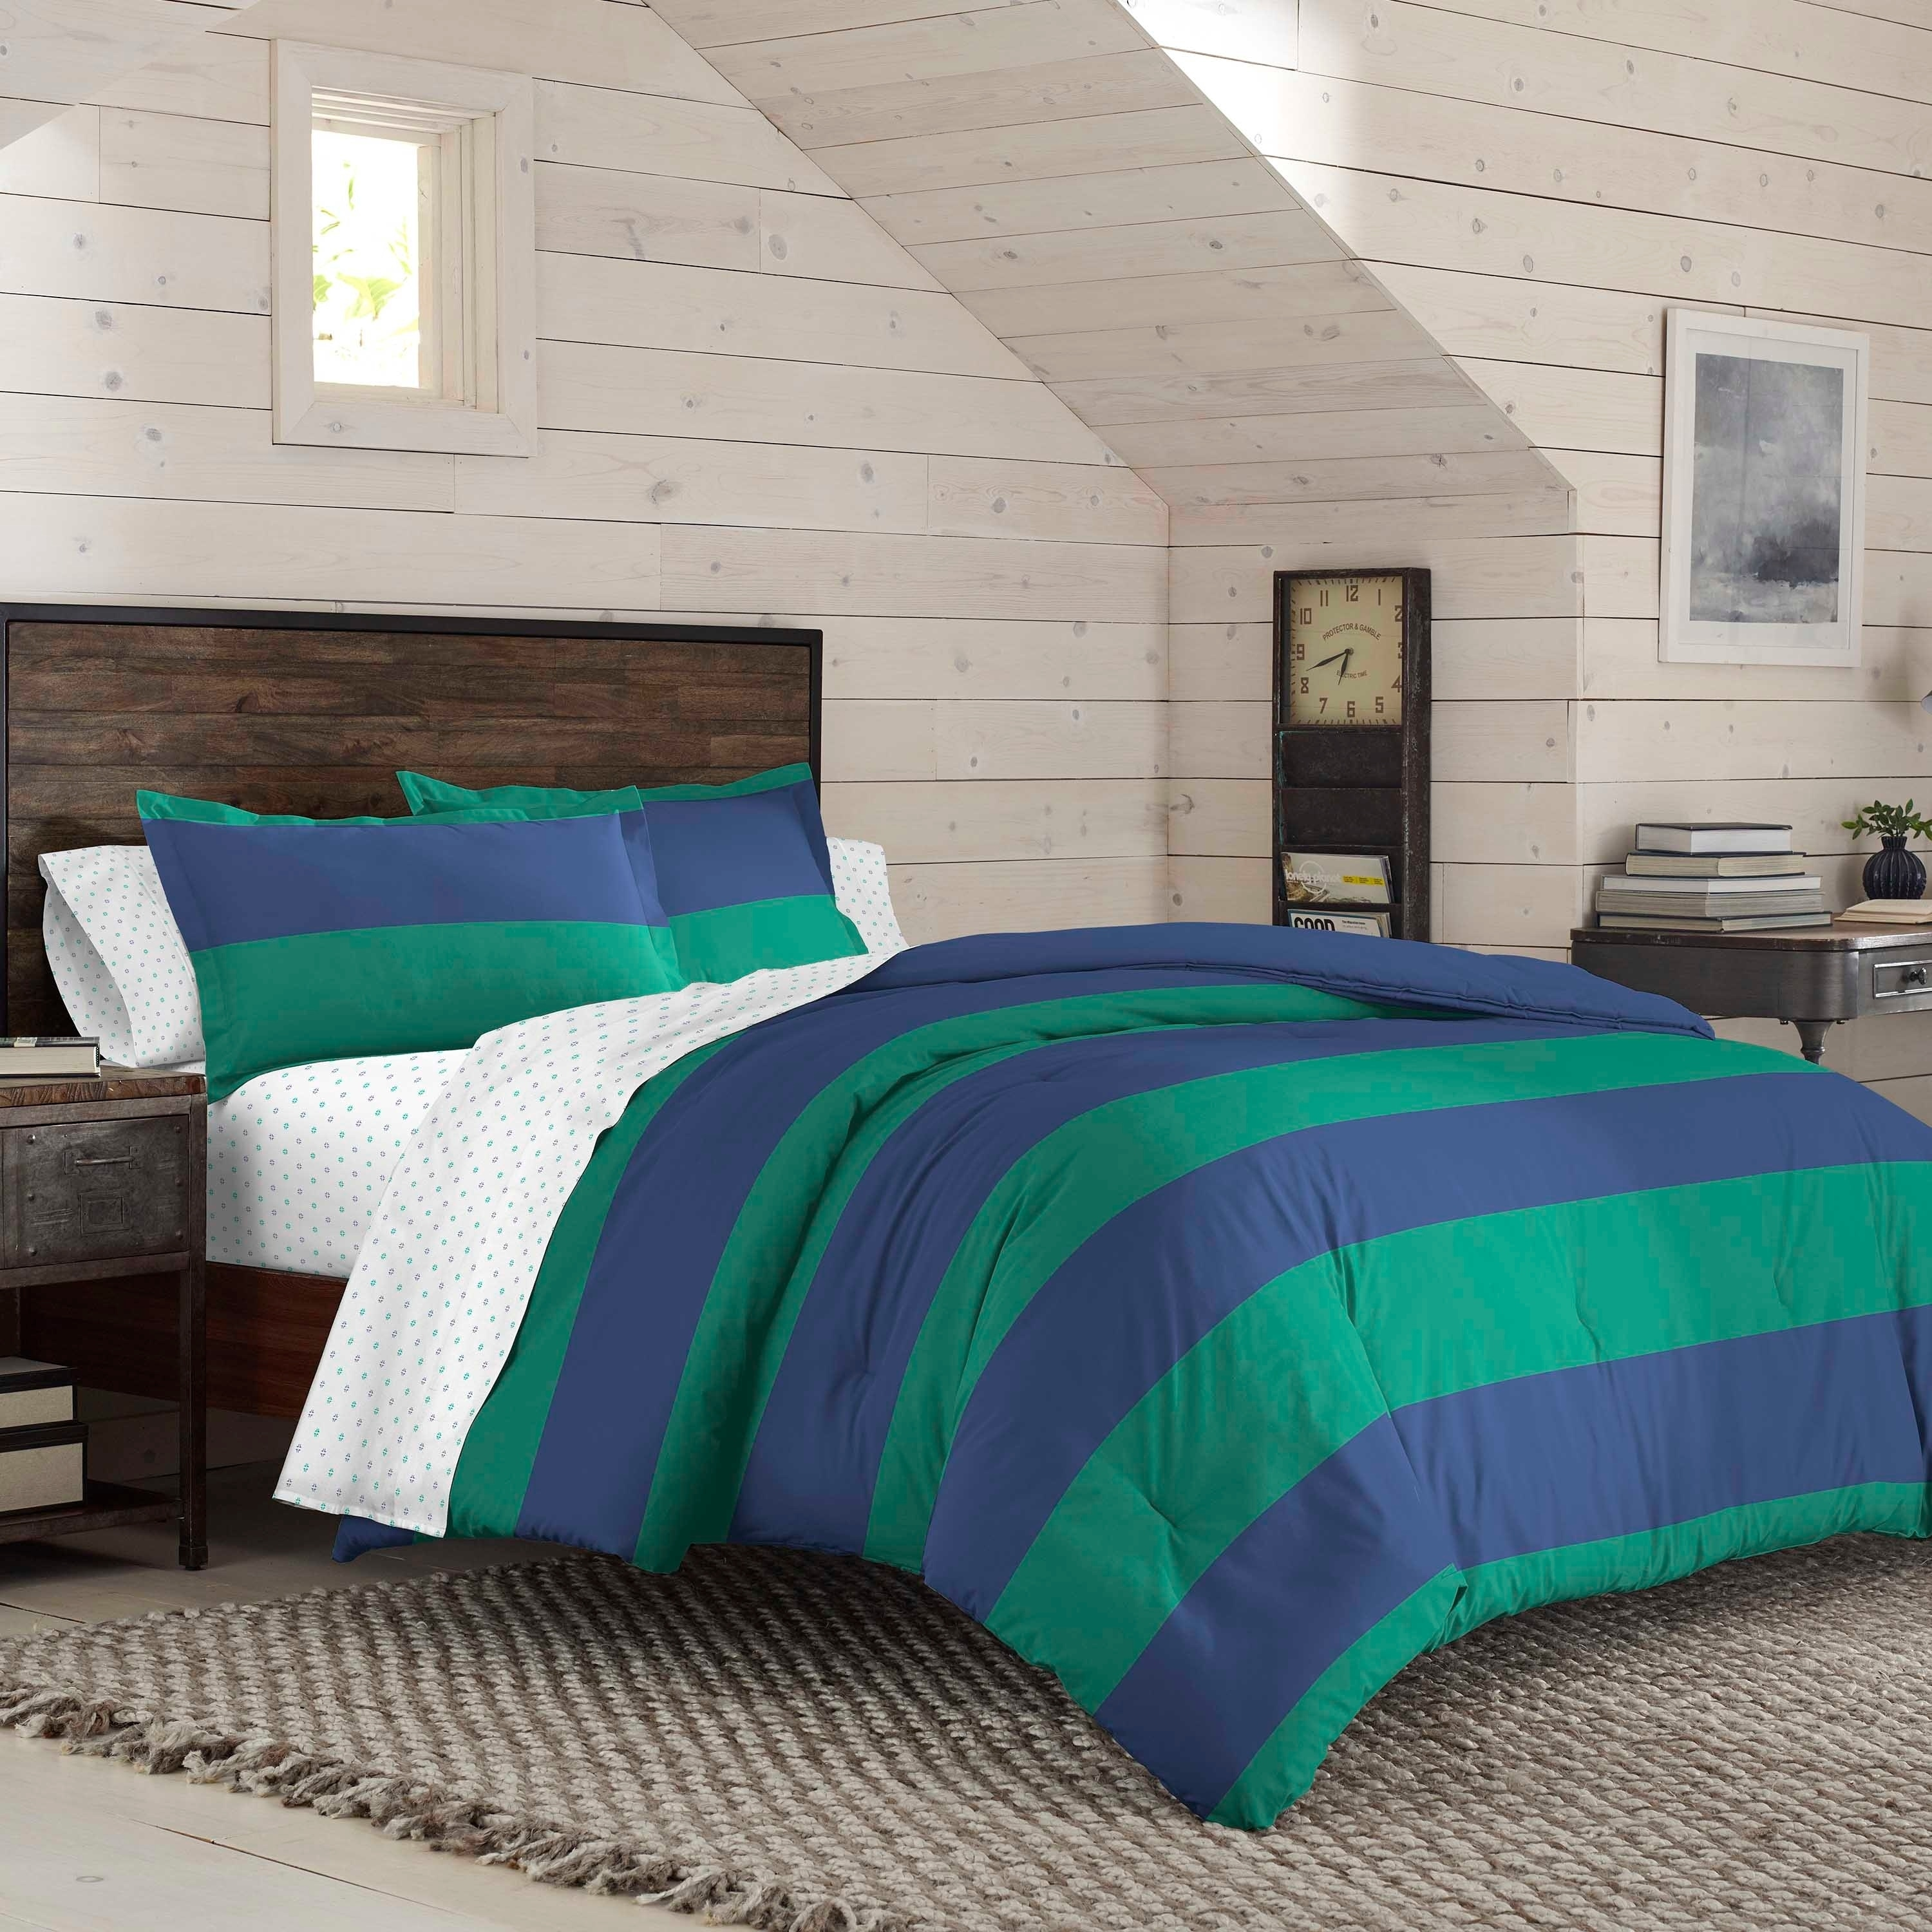 Izod American Rugby Stripe Reversible Comforter Set With Shams On Sale Overstock 28898784 King Blue Green